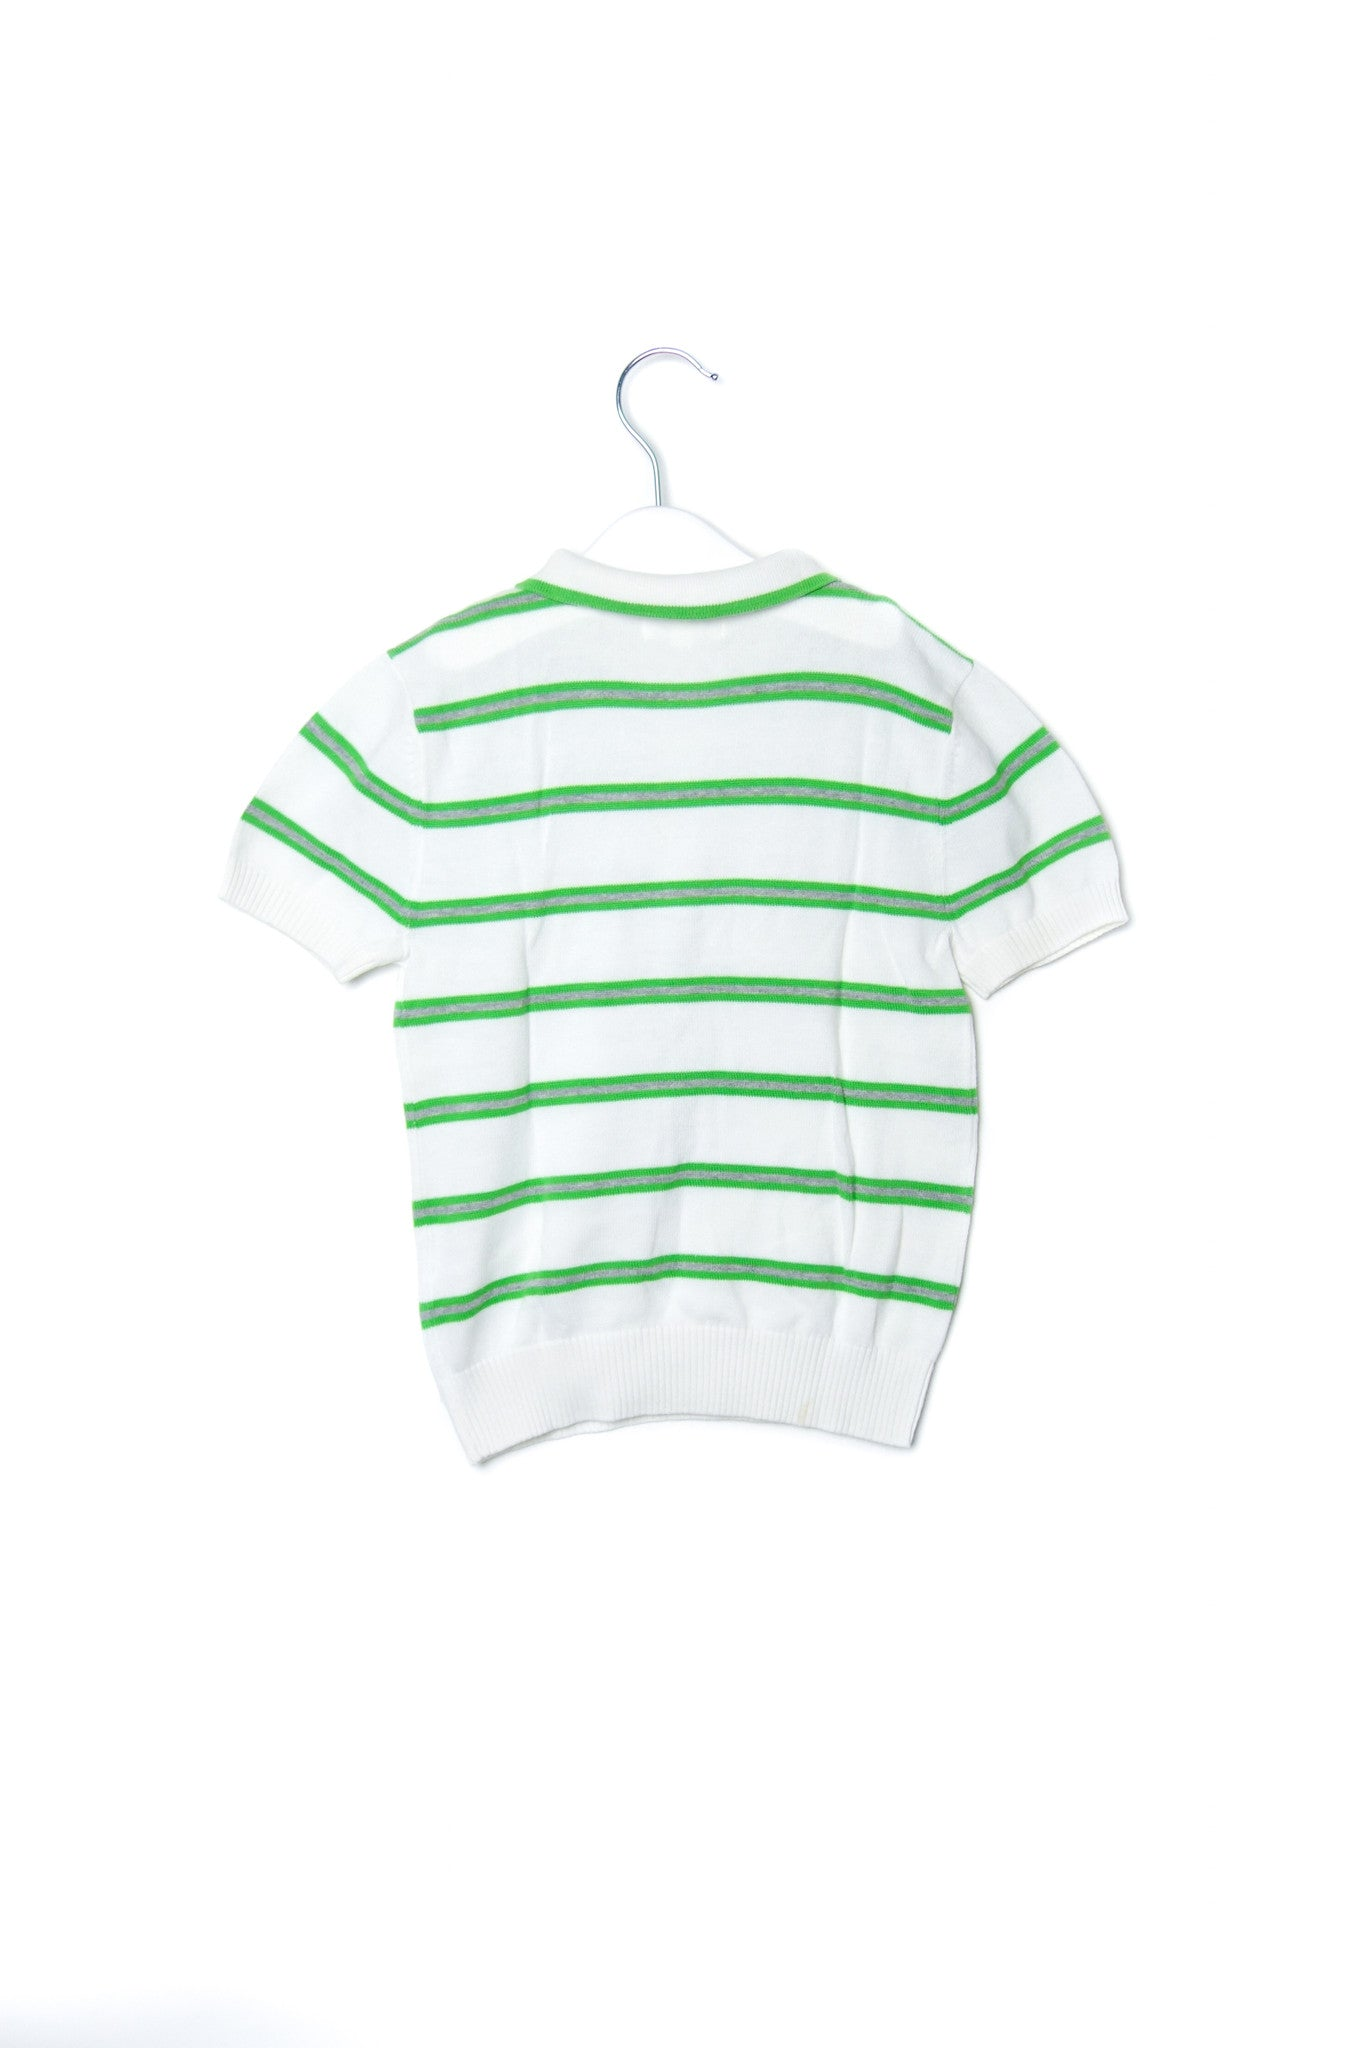 10001819 Nicholas & Bears Kids~Knit Polo 2T at Retykle